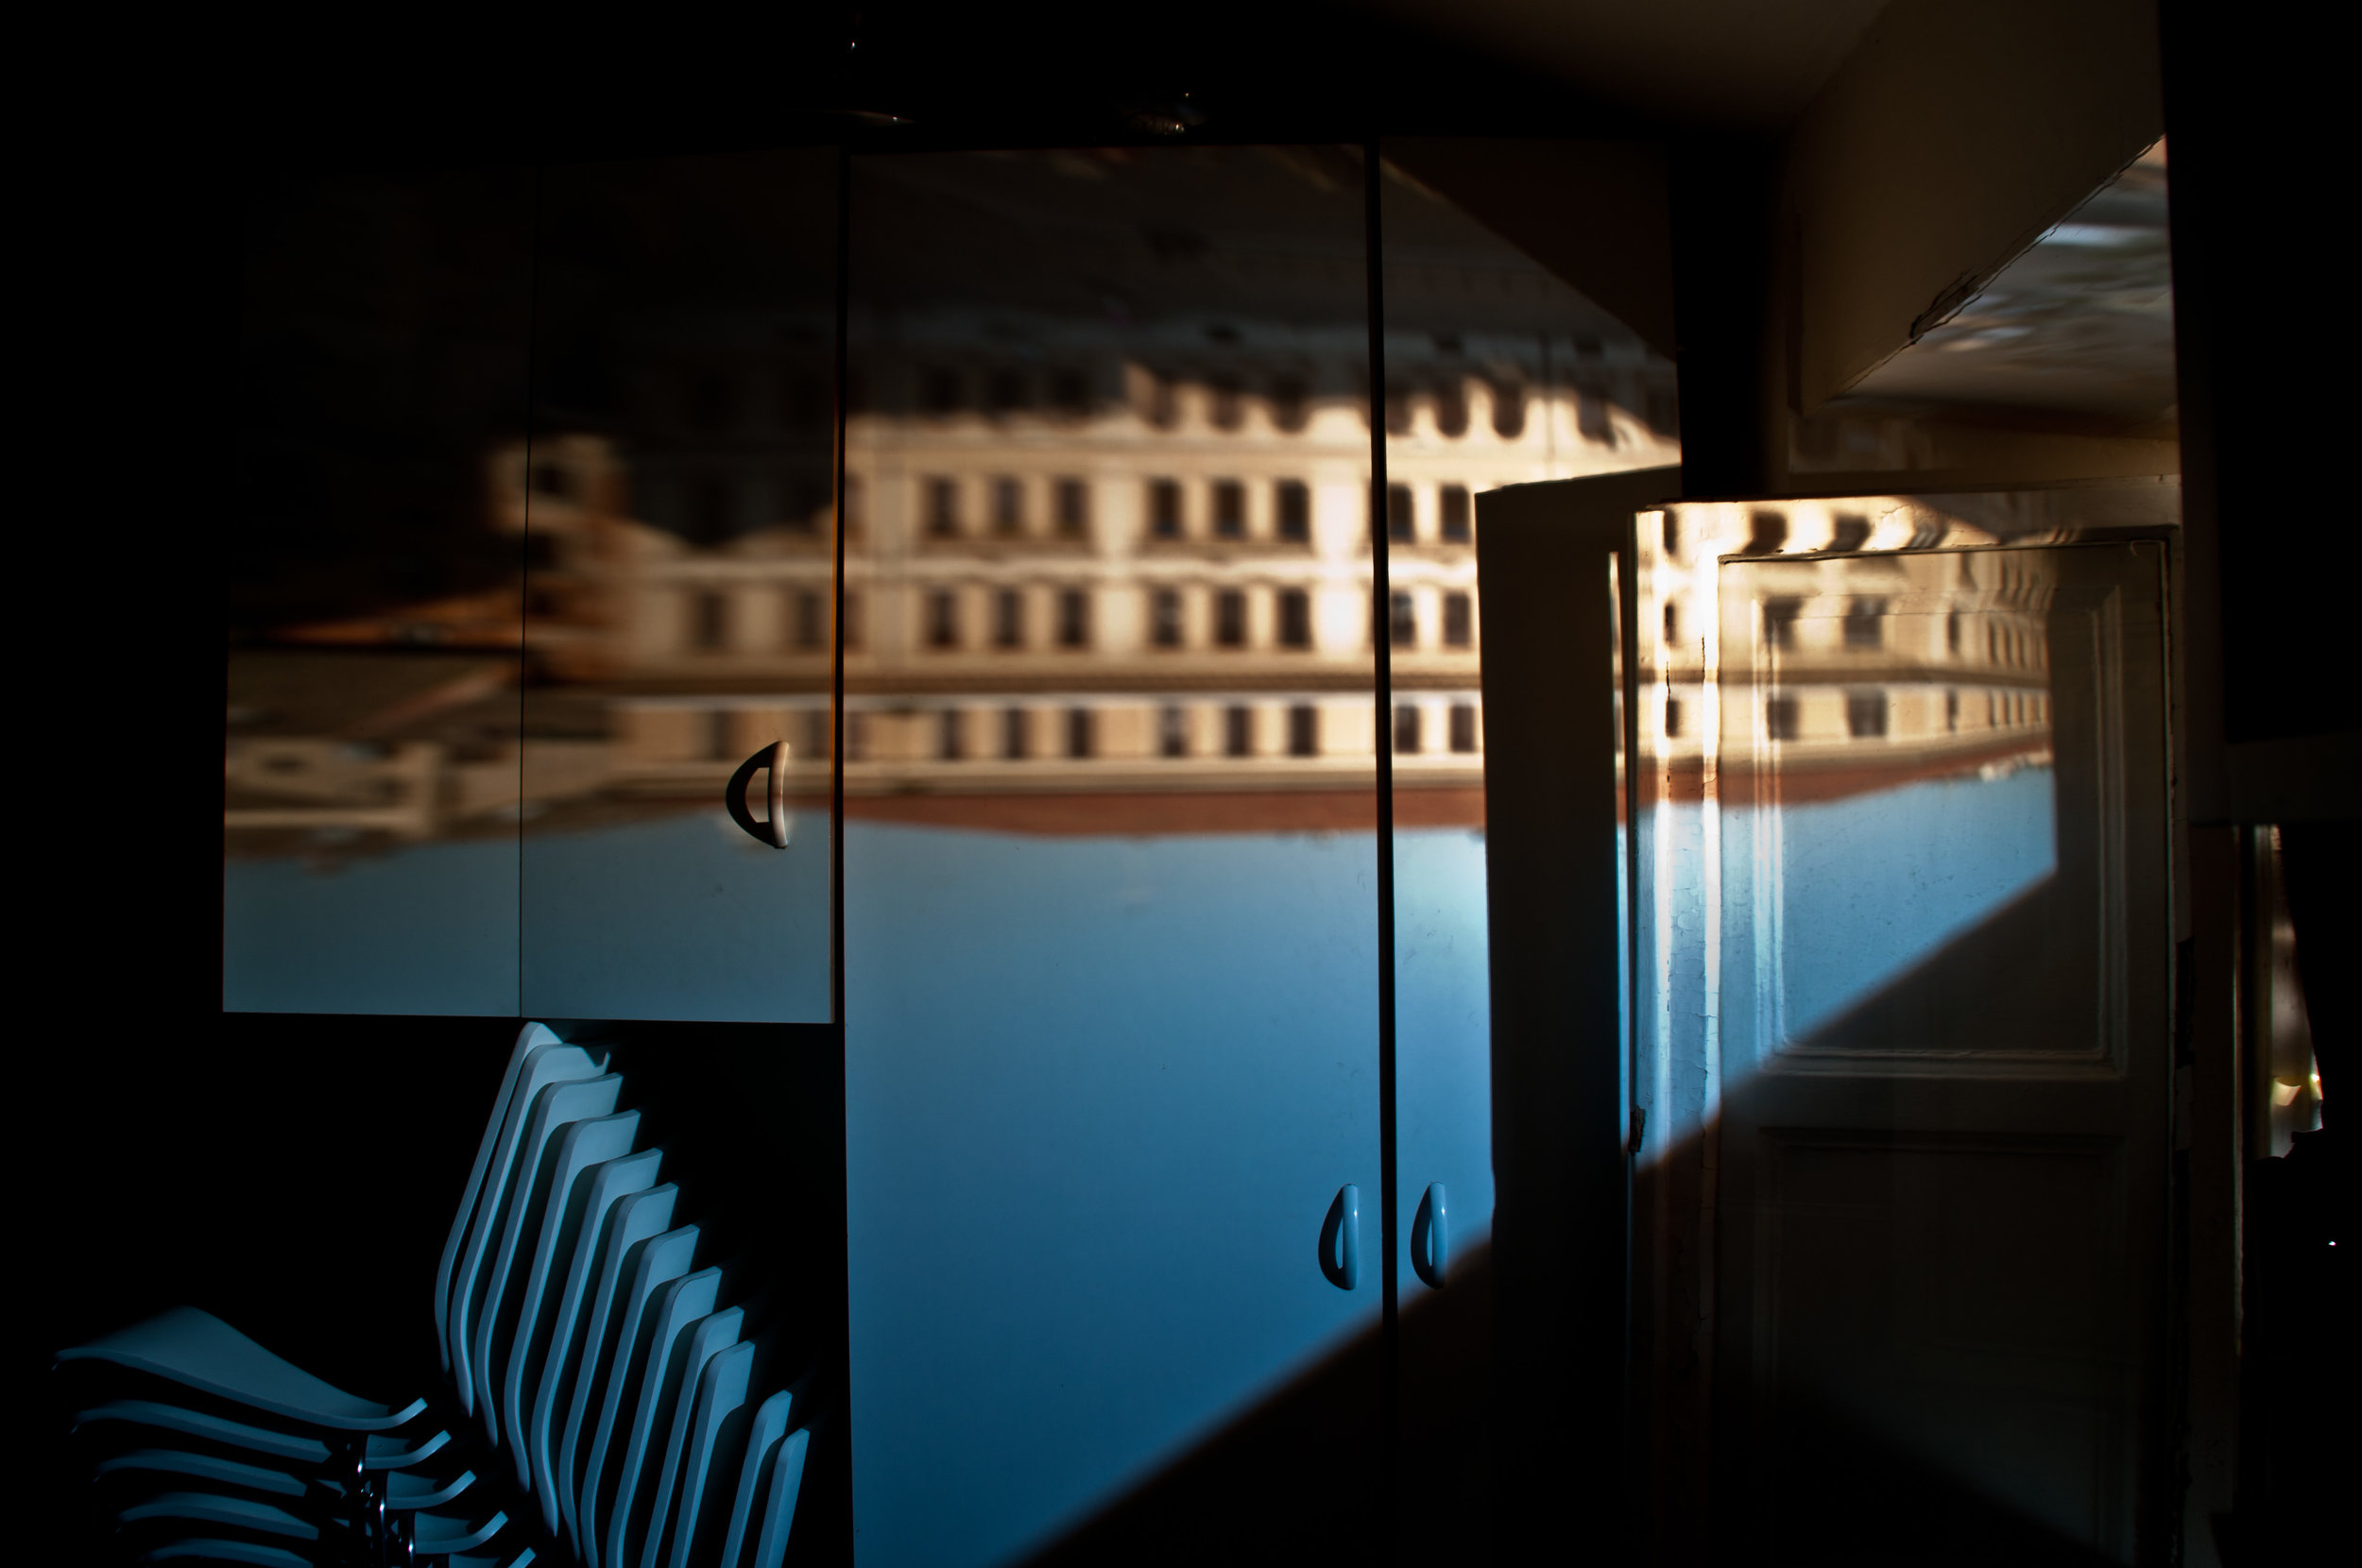 I created this camera obscura while I was studying architecture in Rome. It's the local piazza (city square) reflected into a small kitchen apartment one of my classmates lived in.